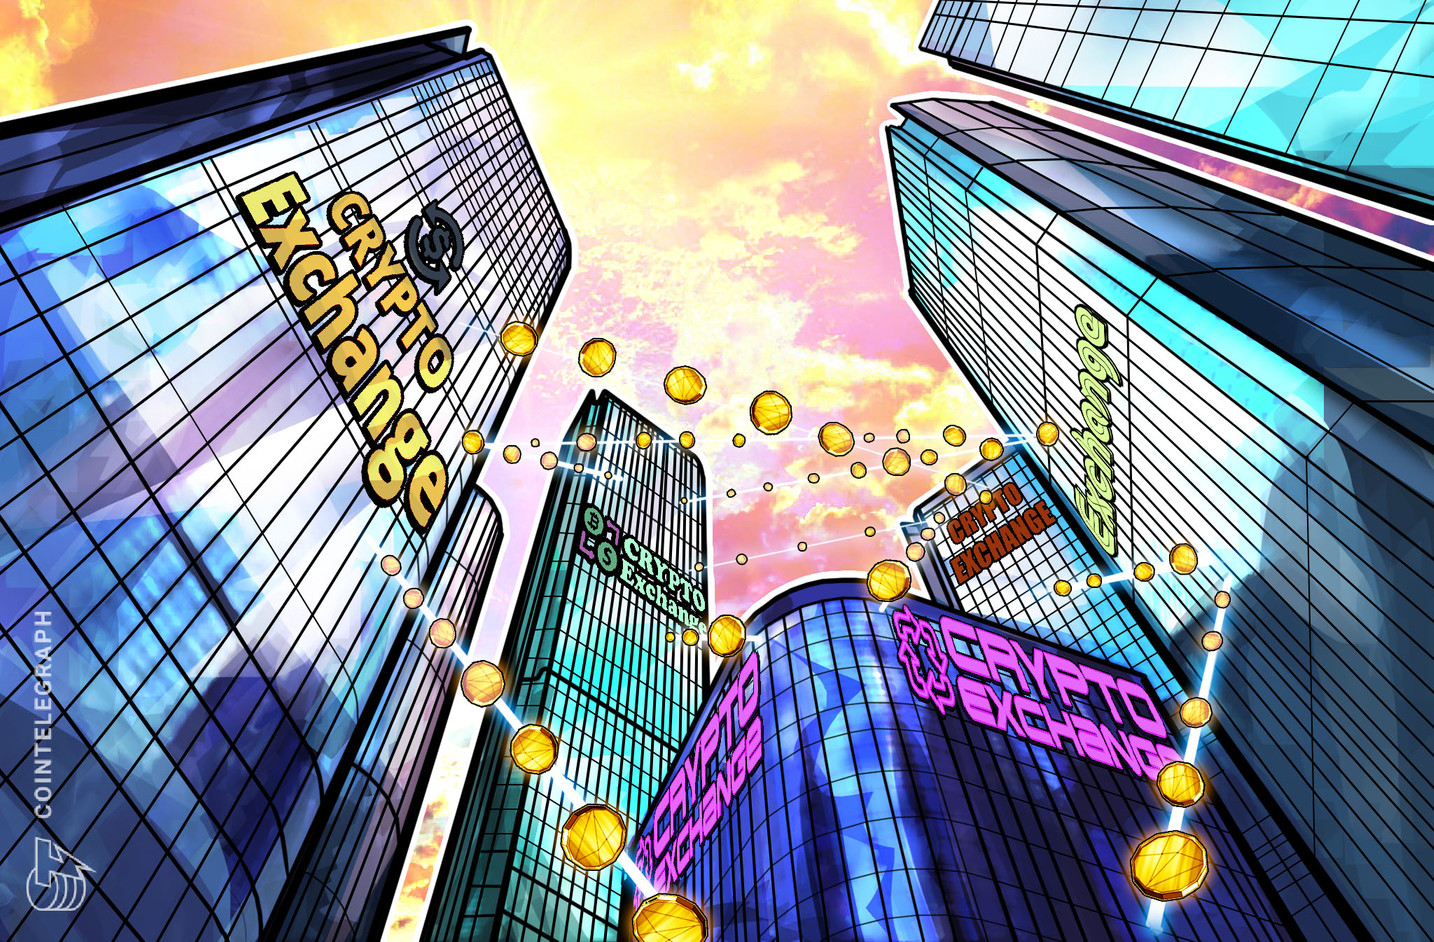 Kraken and Coinbase Among the Cleanest Crypto Exchanges: BTI Report